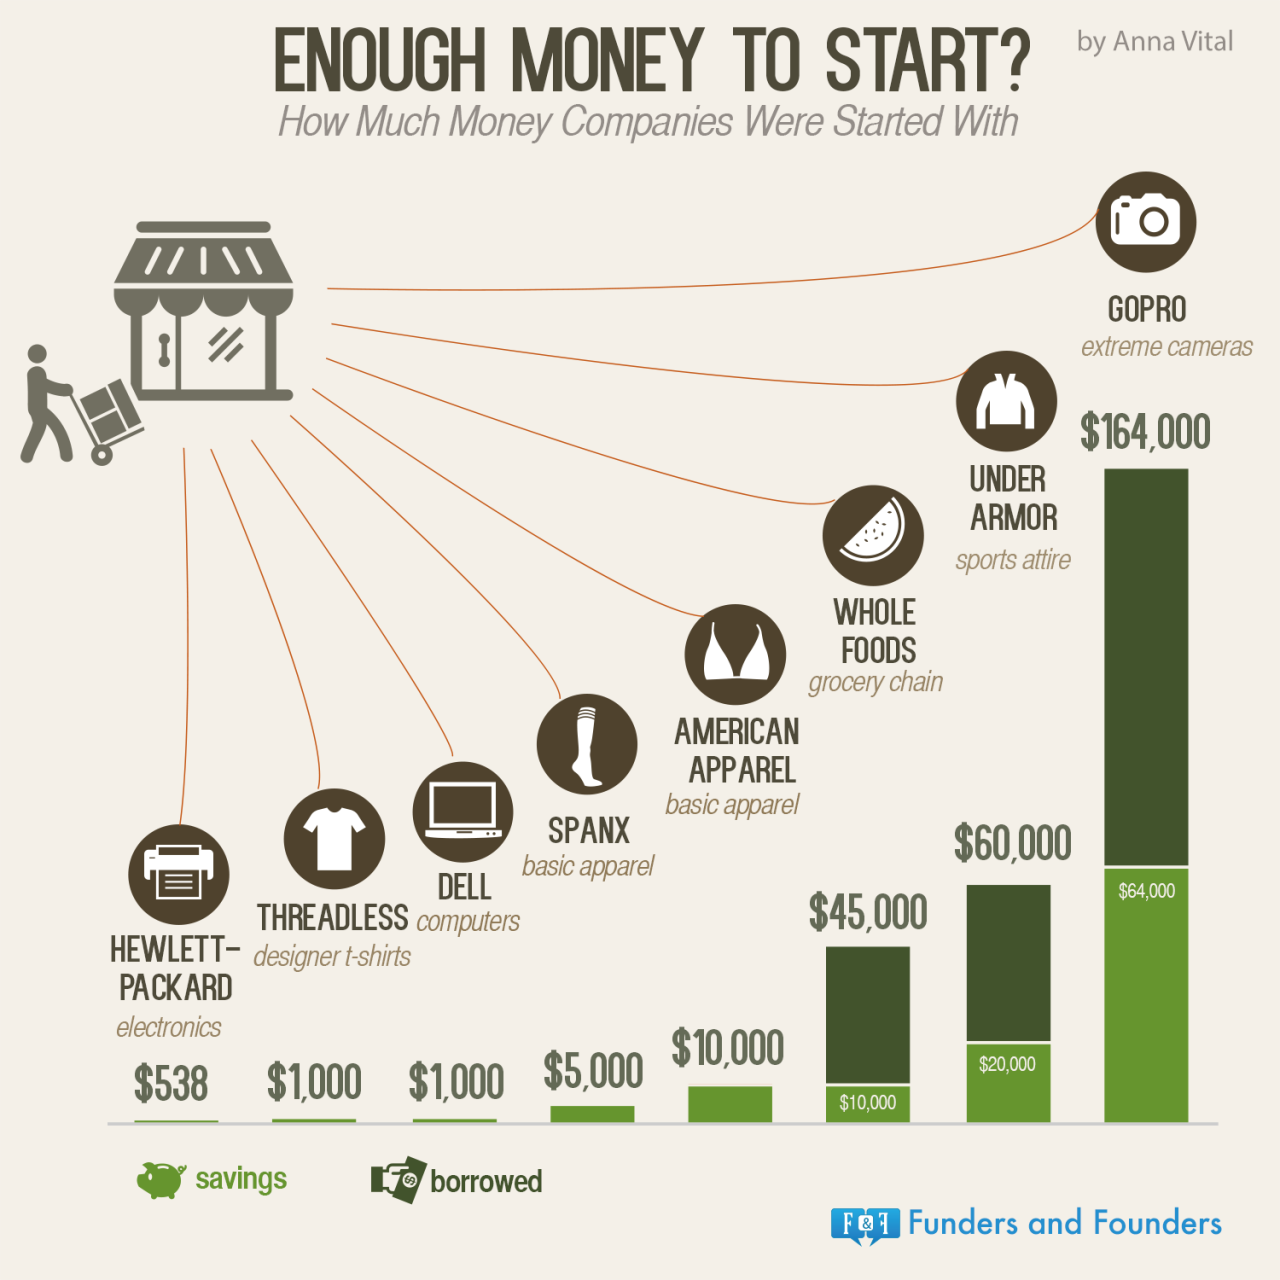 How Much Money Does Whole Foods Make A Year